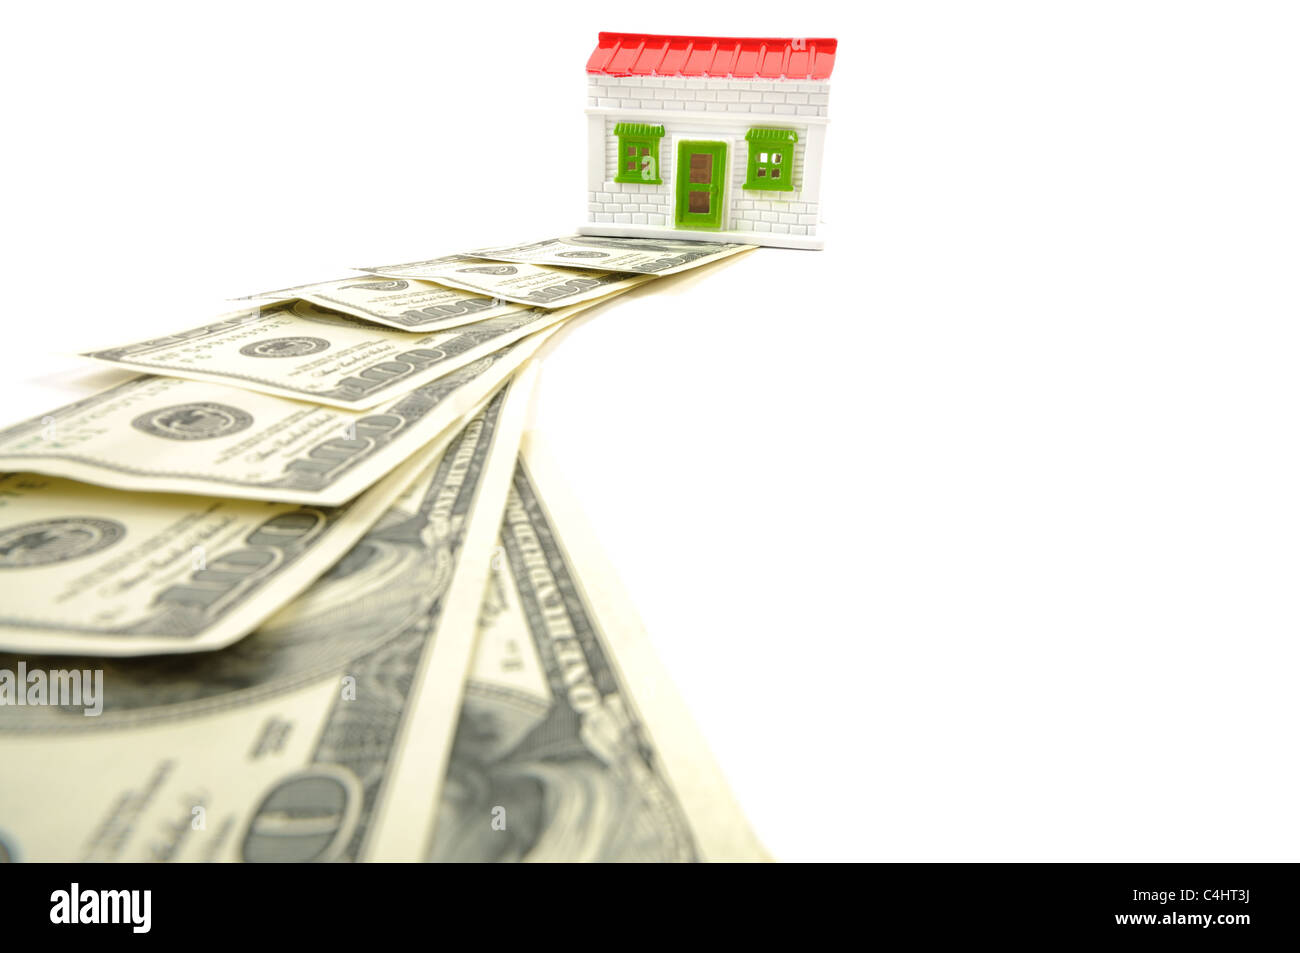 A way to get a new house, dollars and house over white background Stock Photo